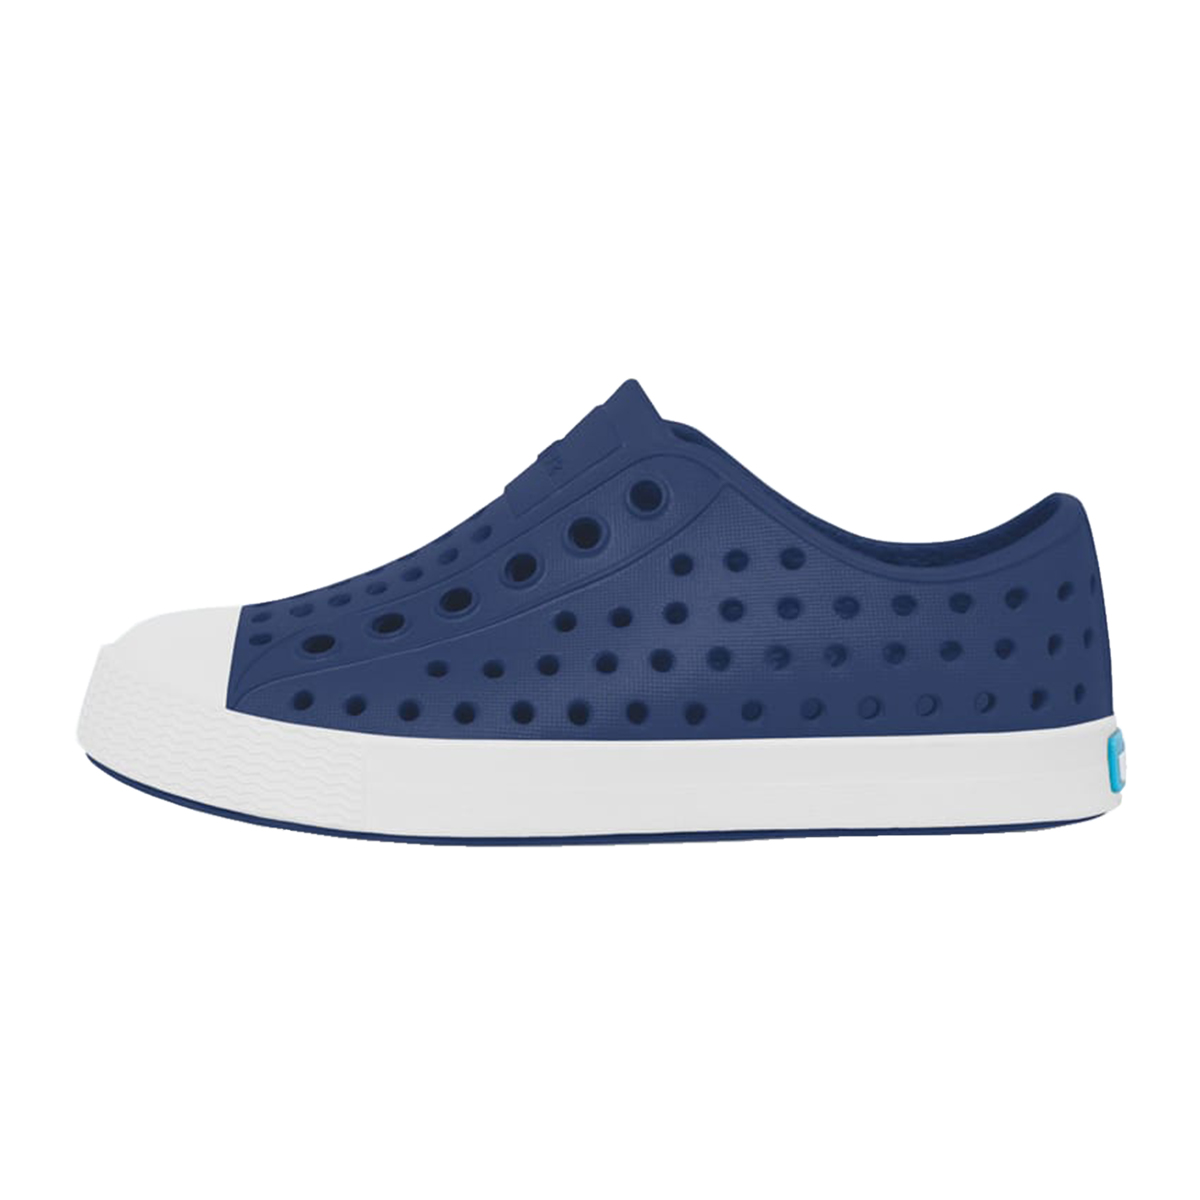 Native Shoes Jefferson Shoe in Regatta Blue